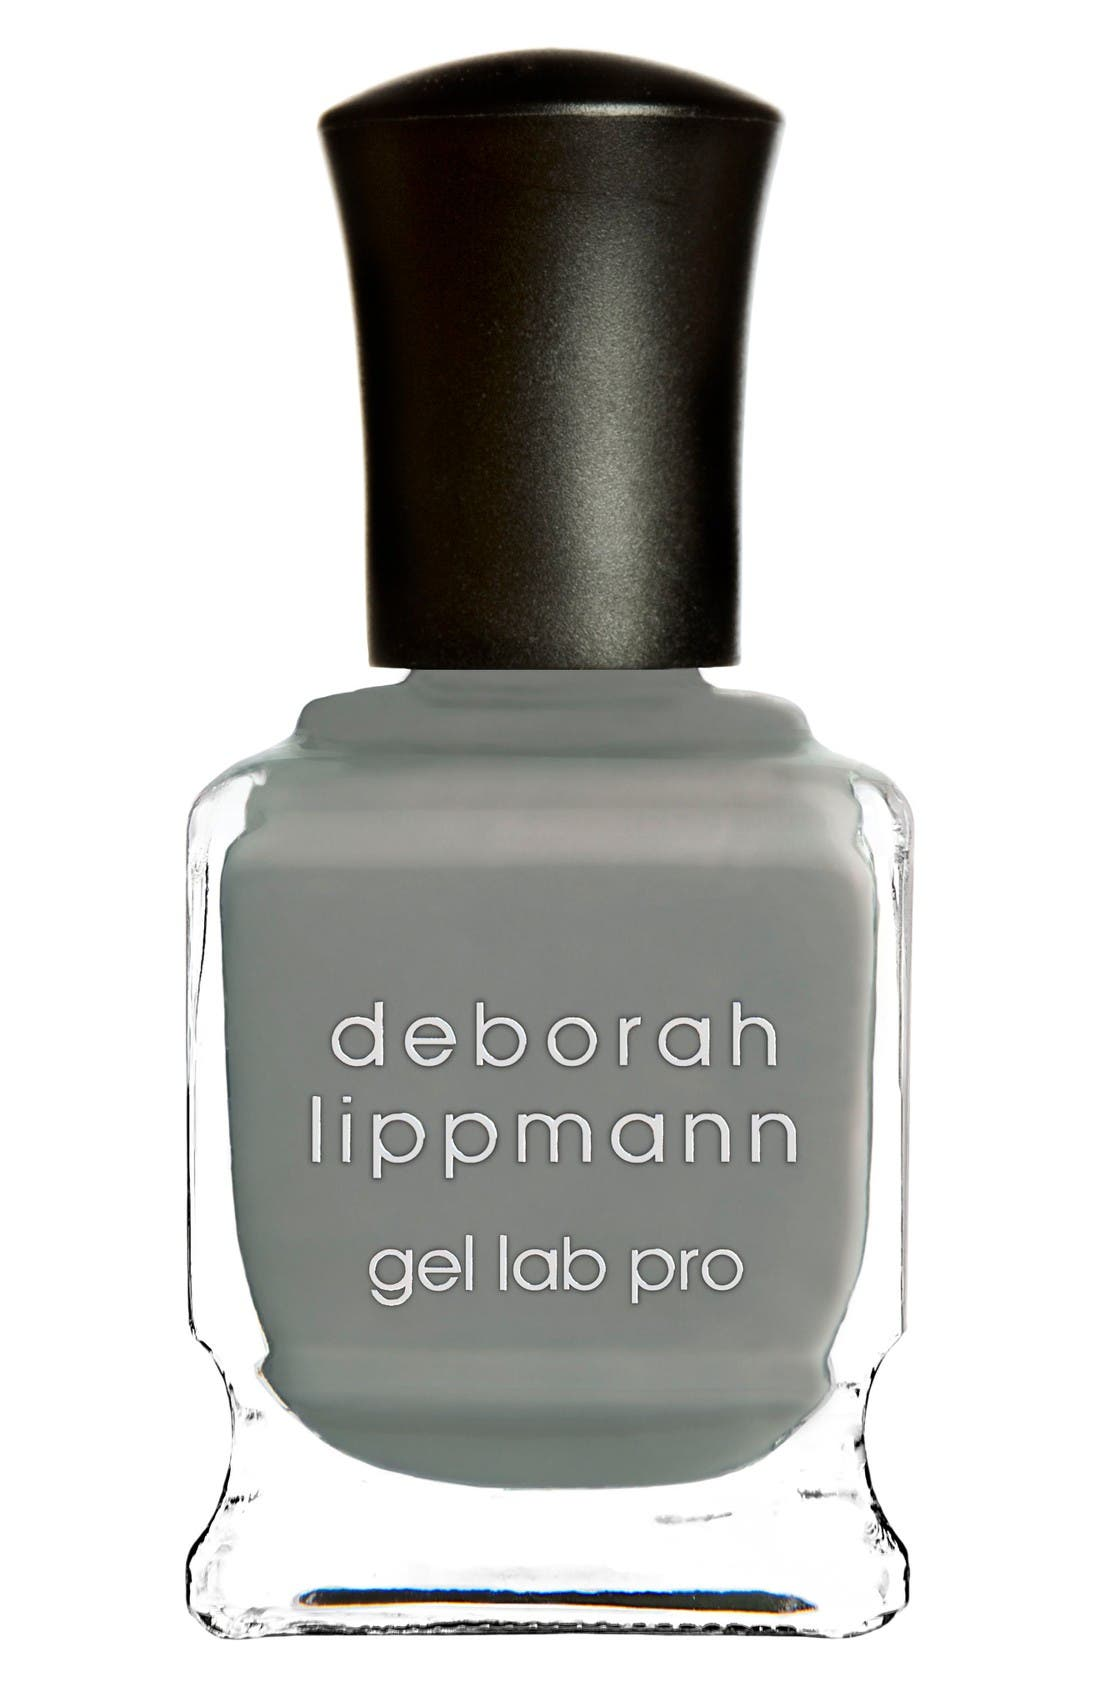 Deborah Lippmann Gel Lab Pro Nail Color (Nordstrom Exclusive)